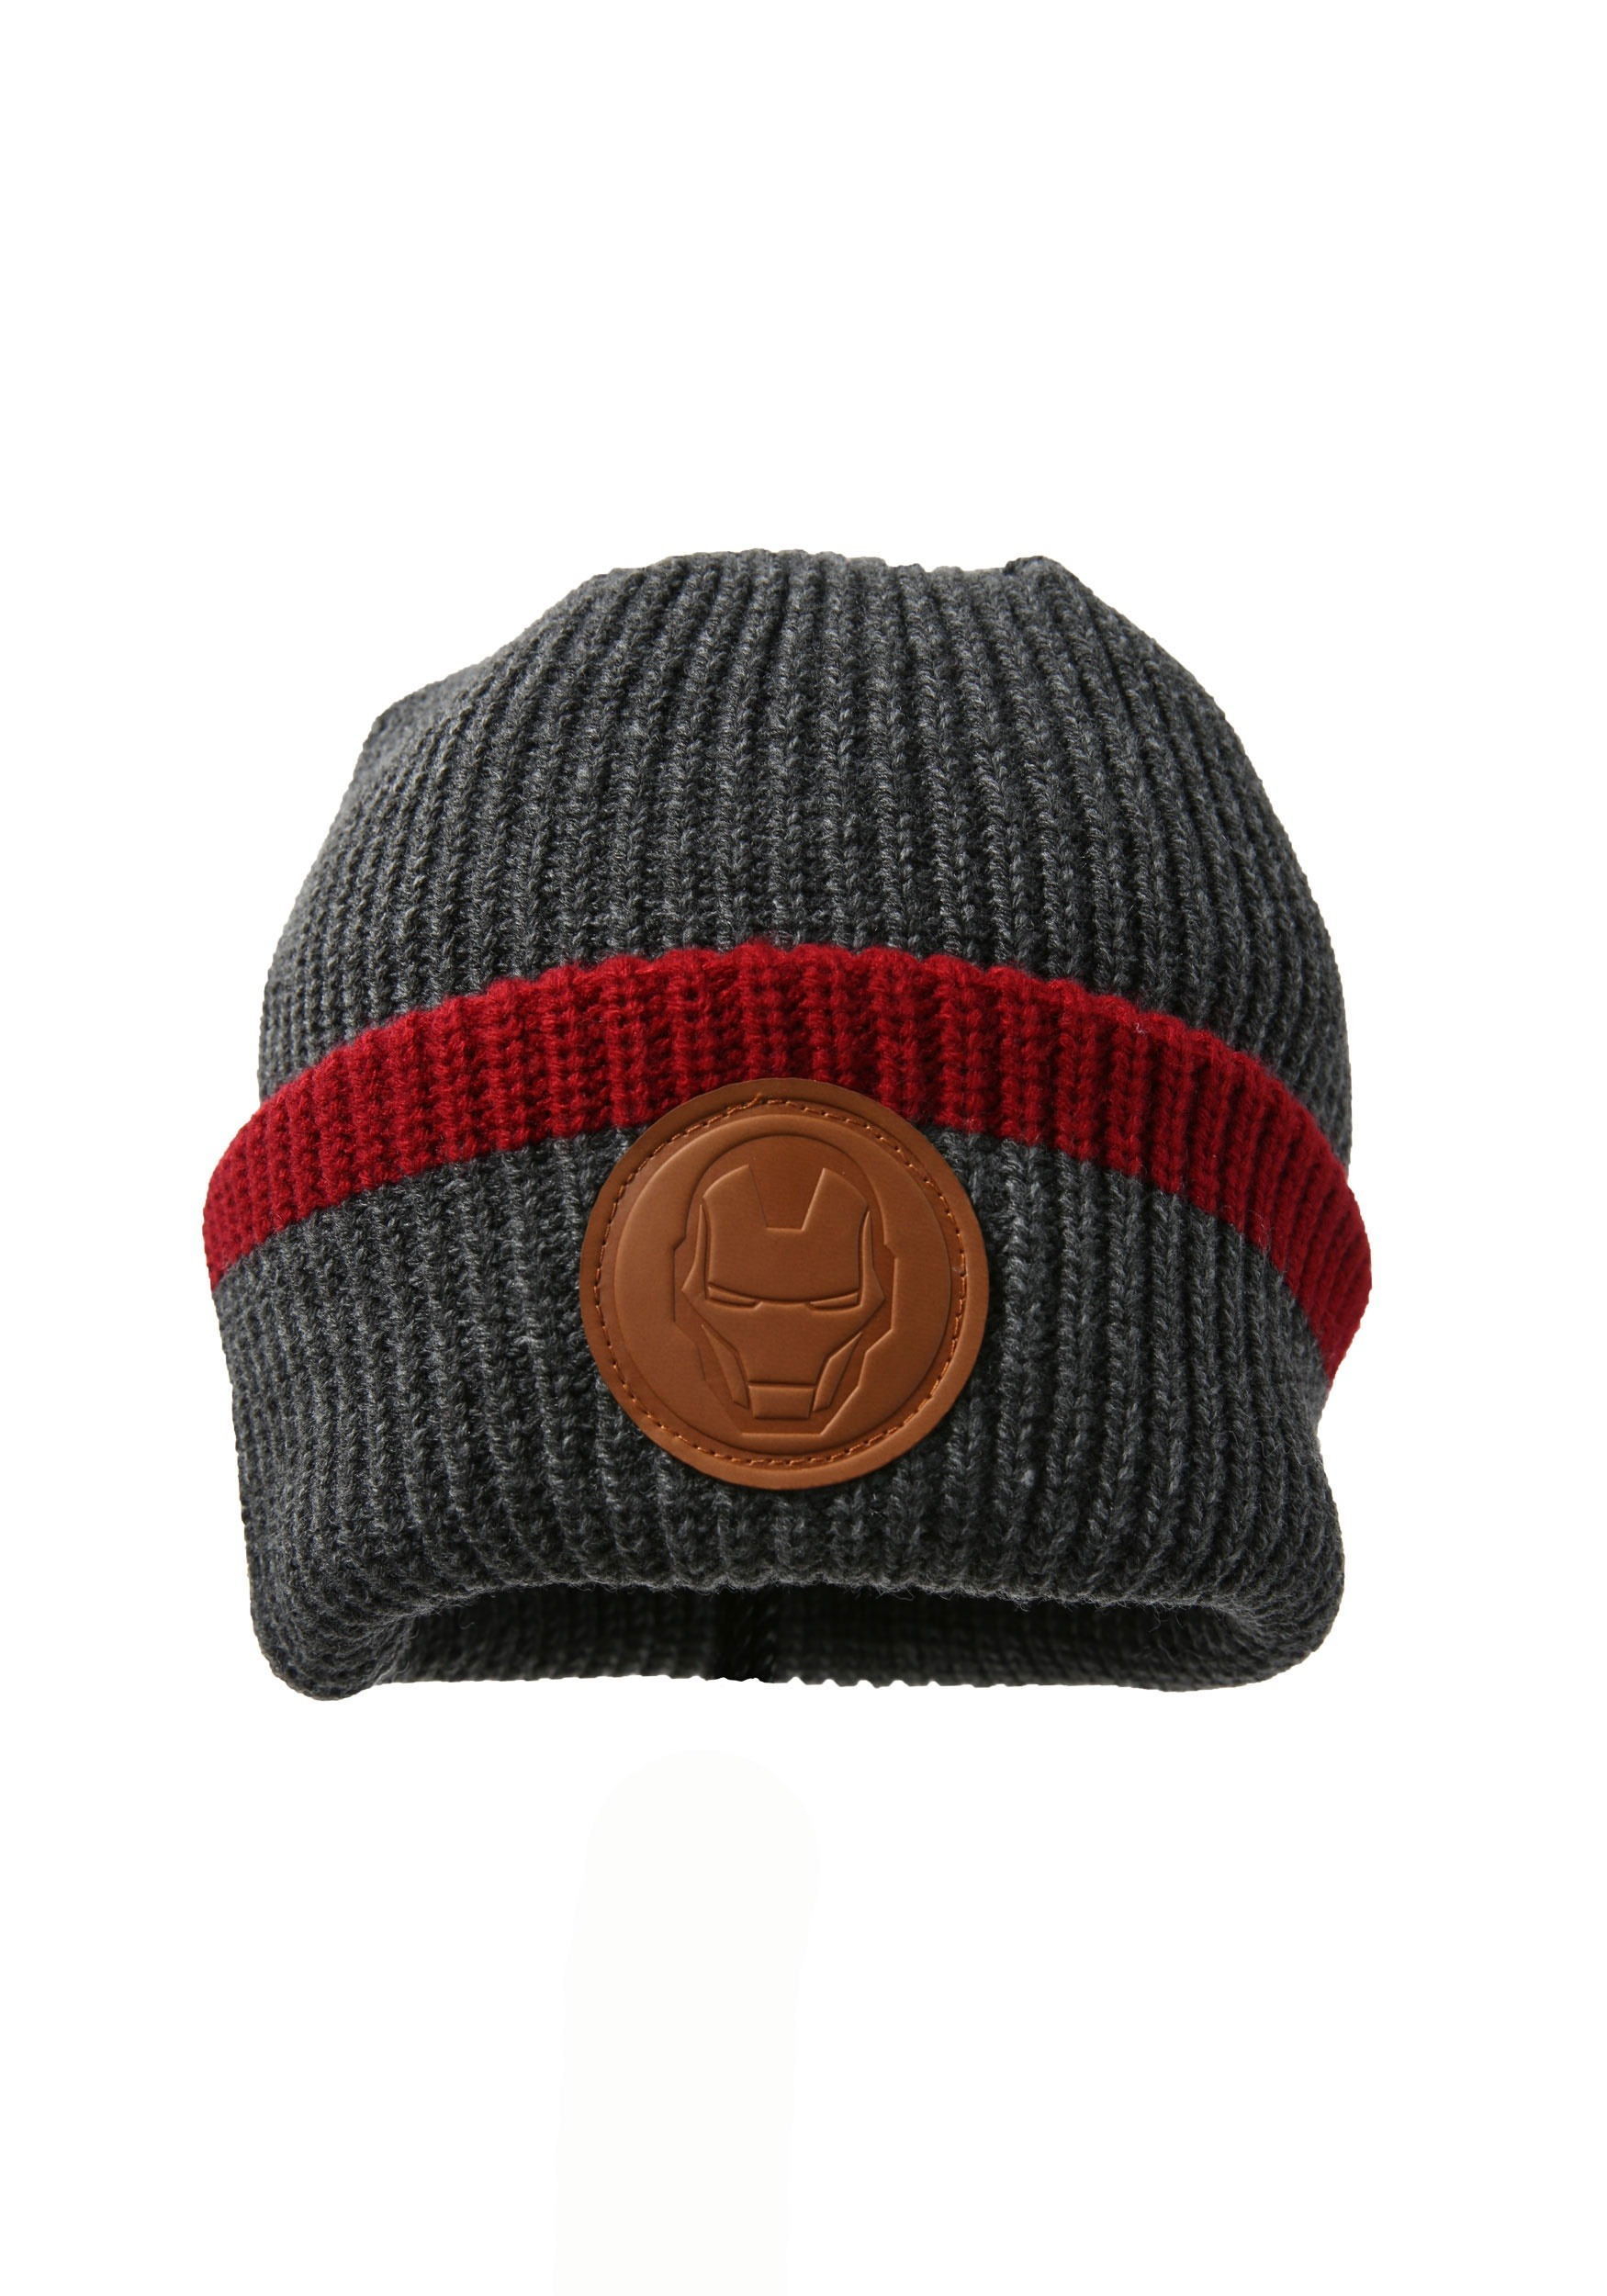 f4a1291d51e Marvel Iron Man Winter Hat